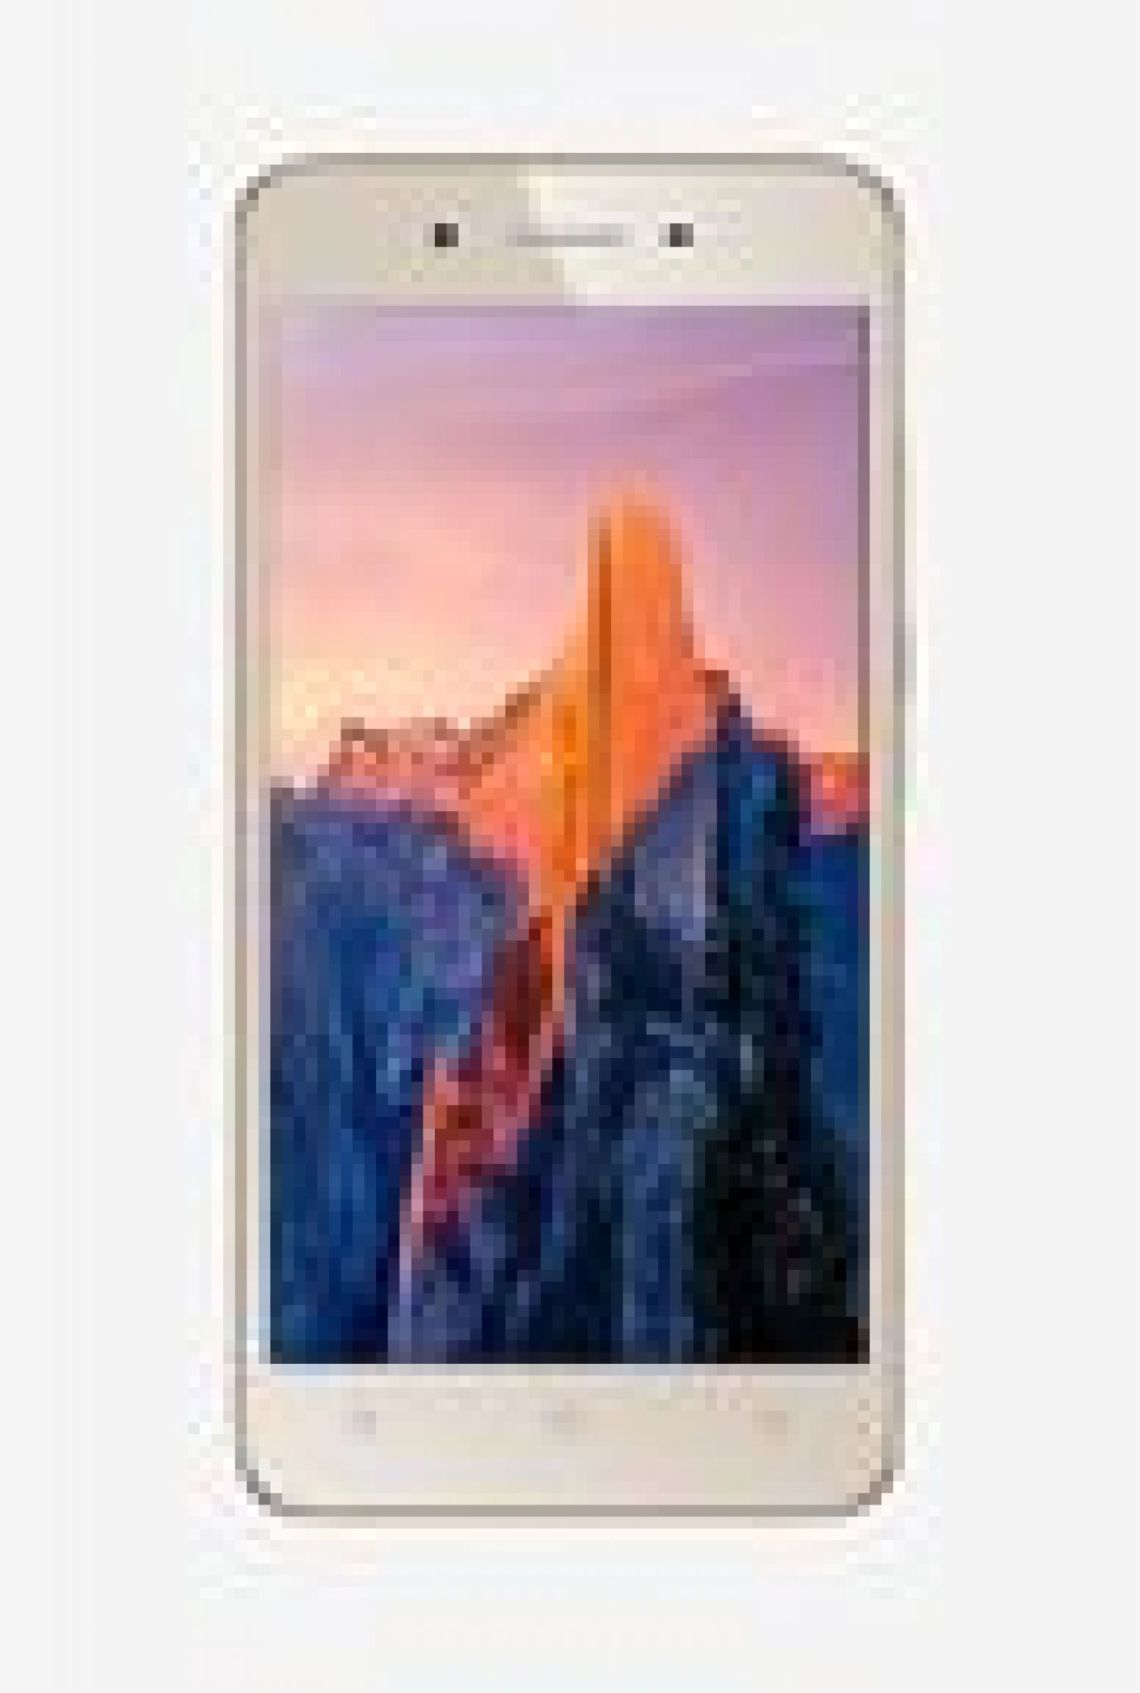 Buy Vivo Y53 16GB (Crown Gold) Online At Best Price @ Tata CLiQ